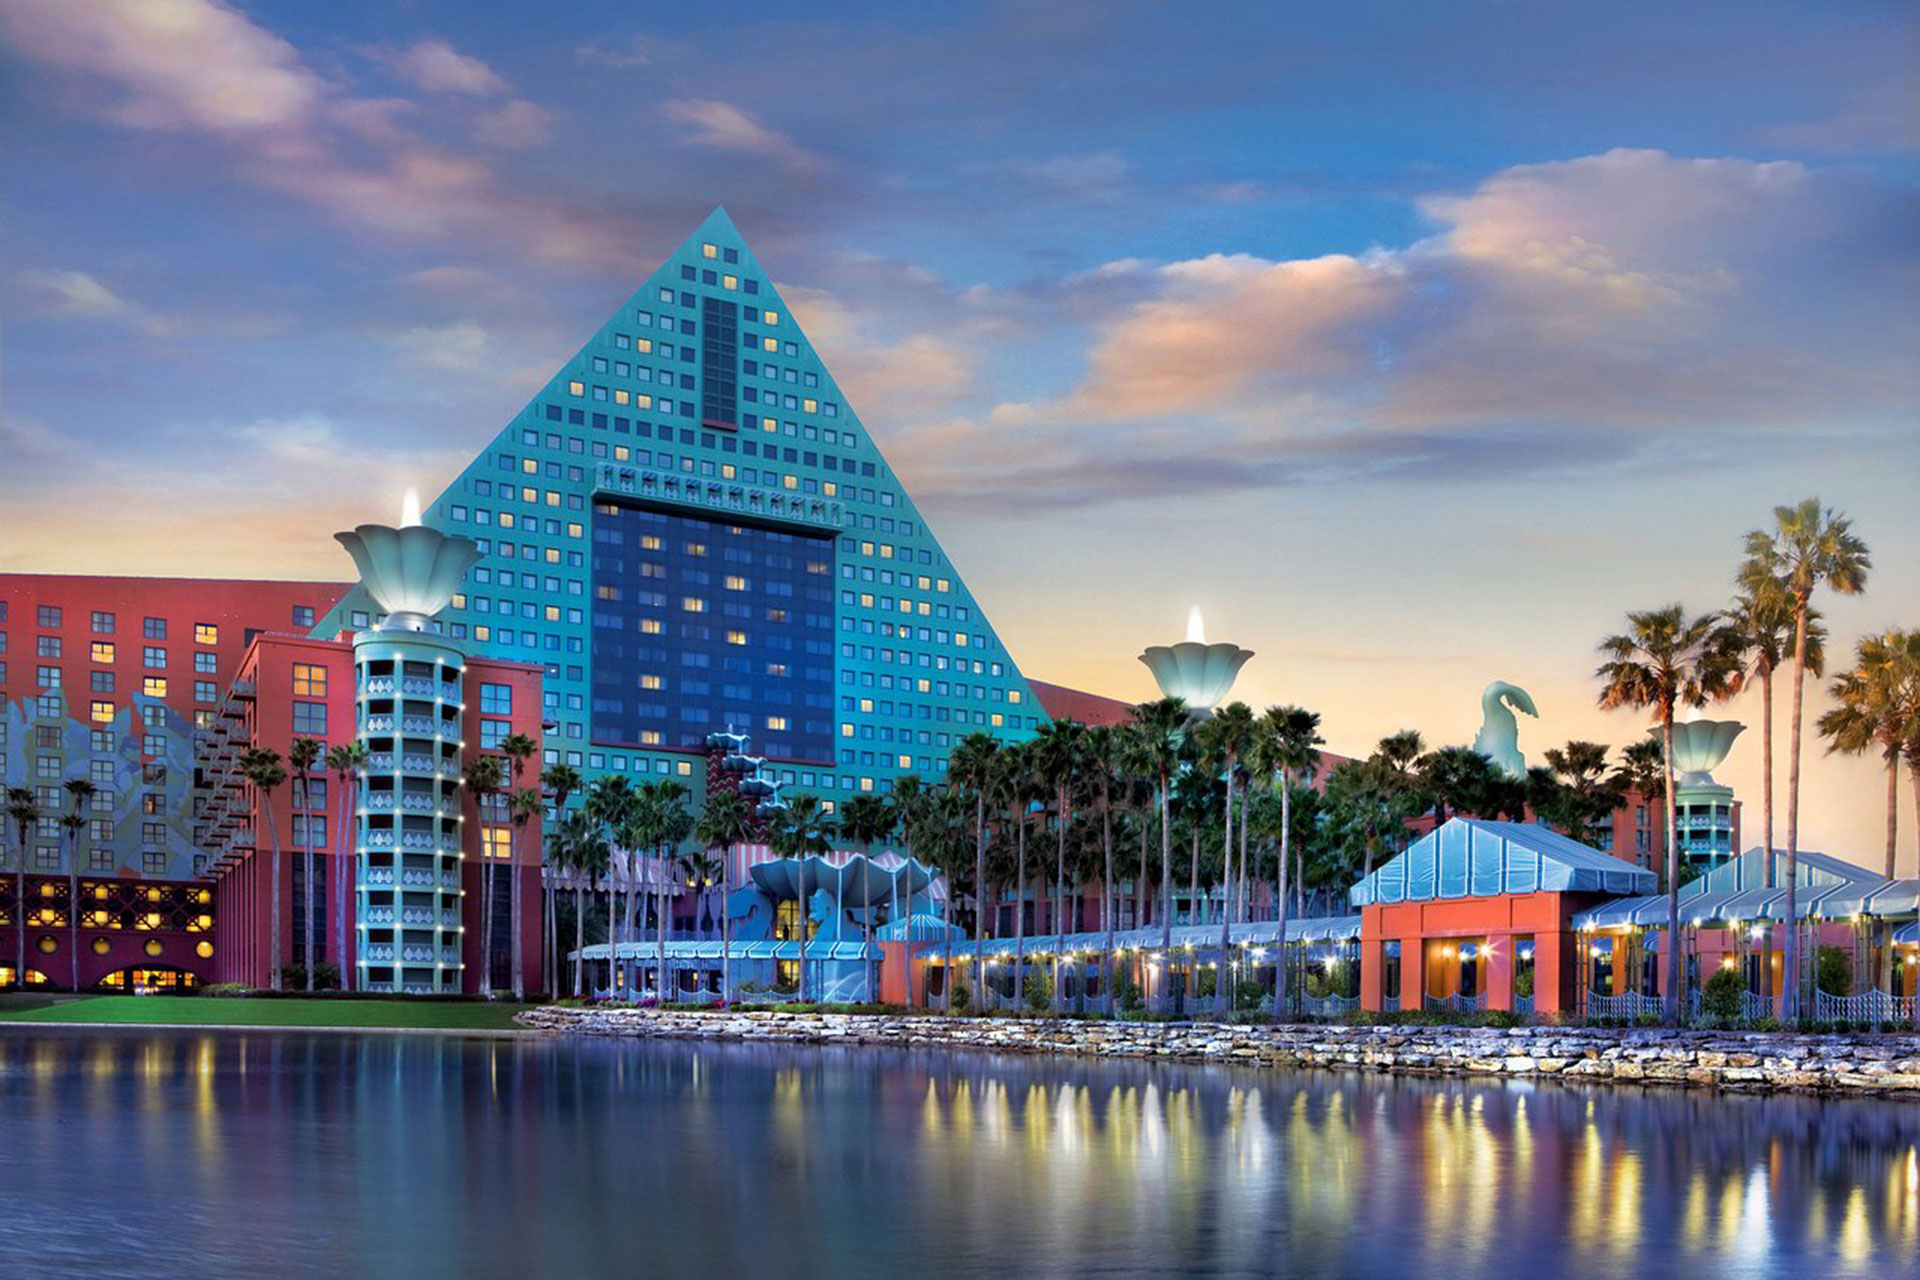 Walt Disney World Swan & Dolphin Resort; Courtesy of Walt Disney World Swan & Dolphin Resort